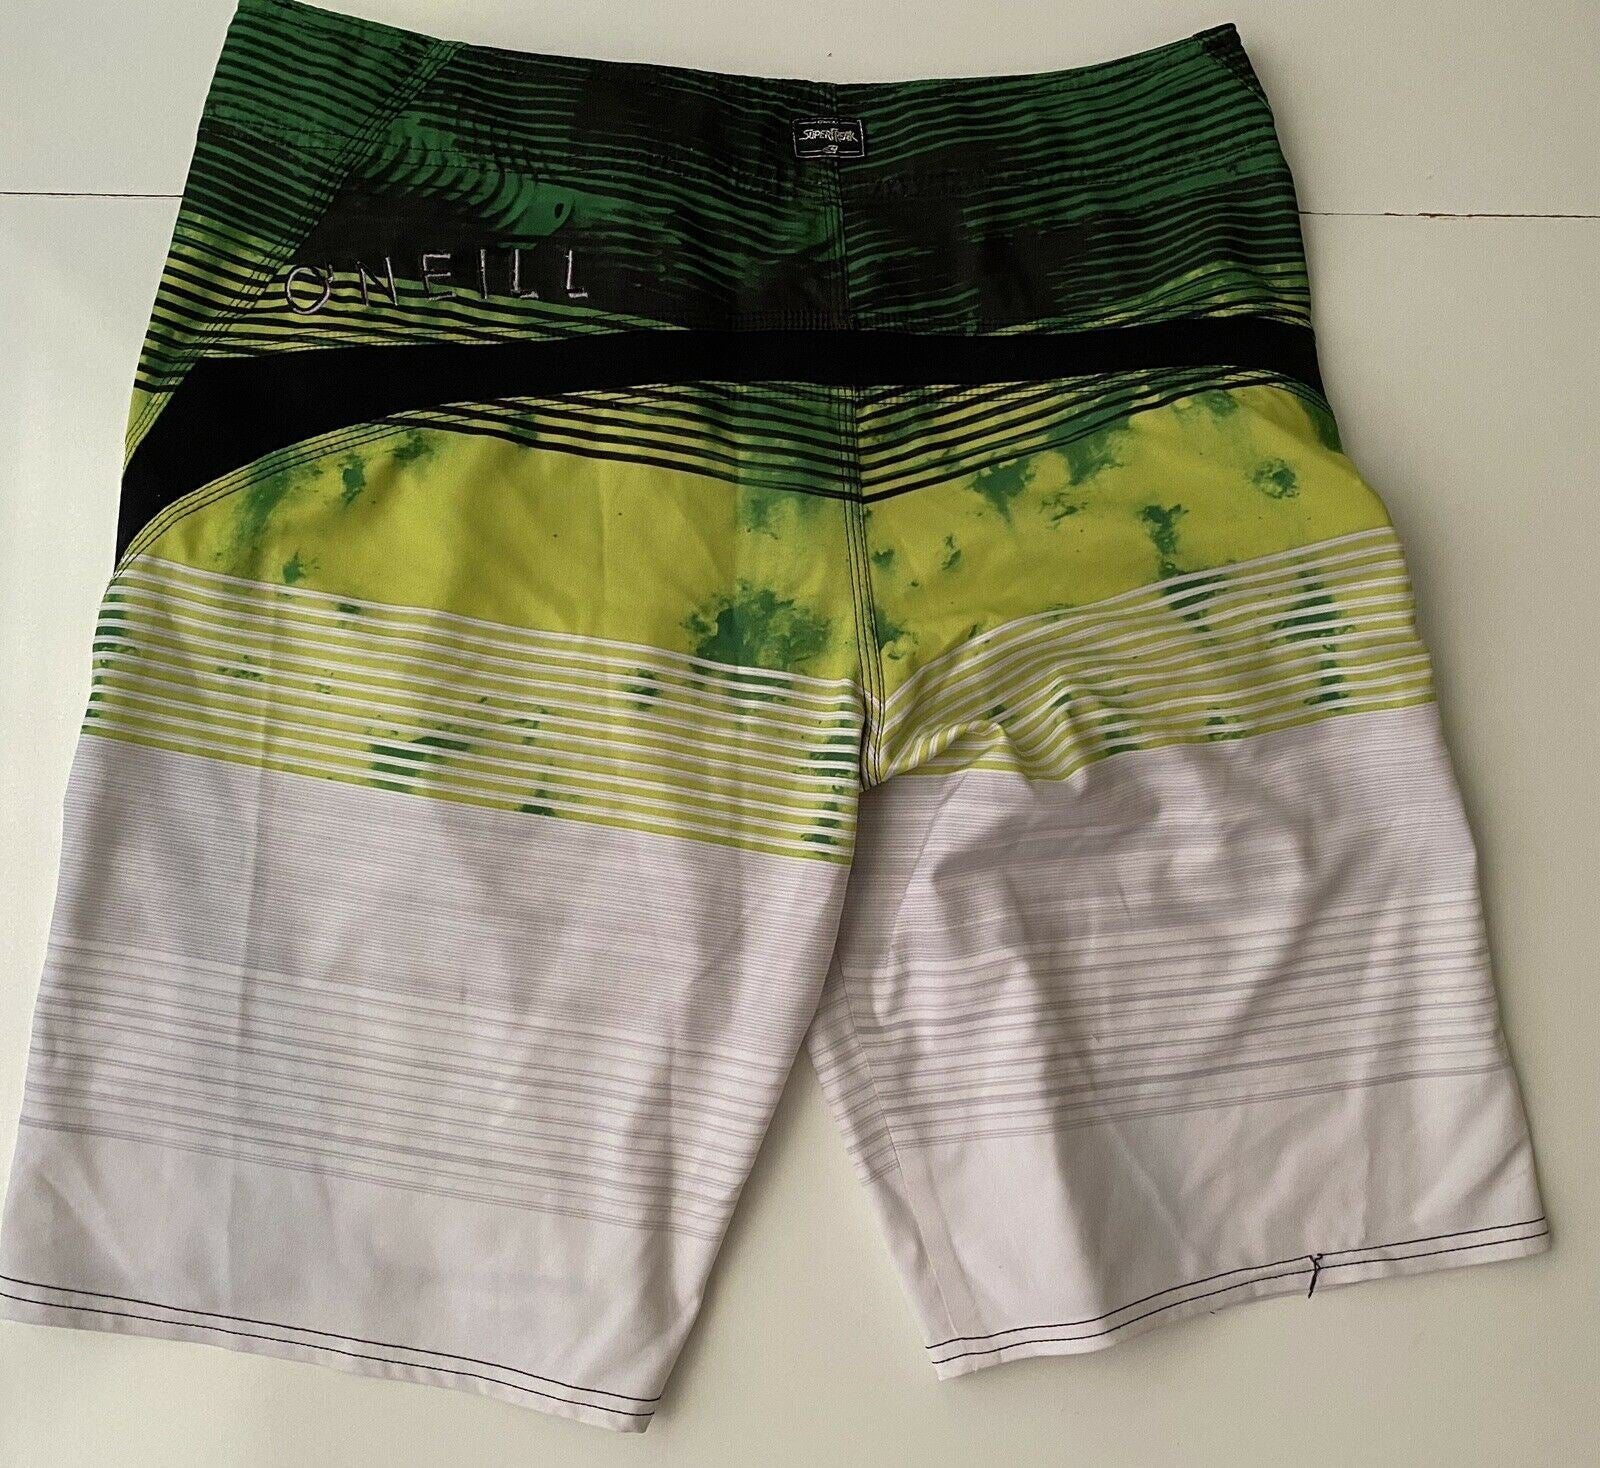 O'Neill Men's Green/White Shorts Size 33 US